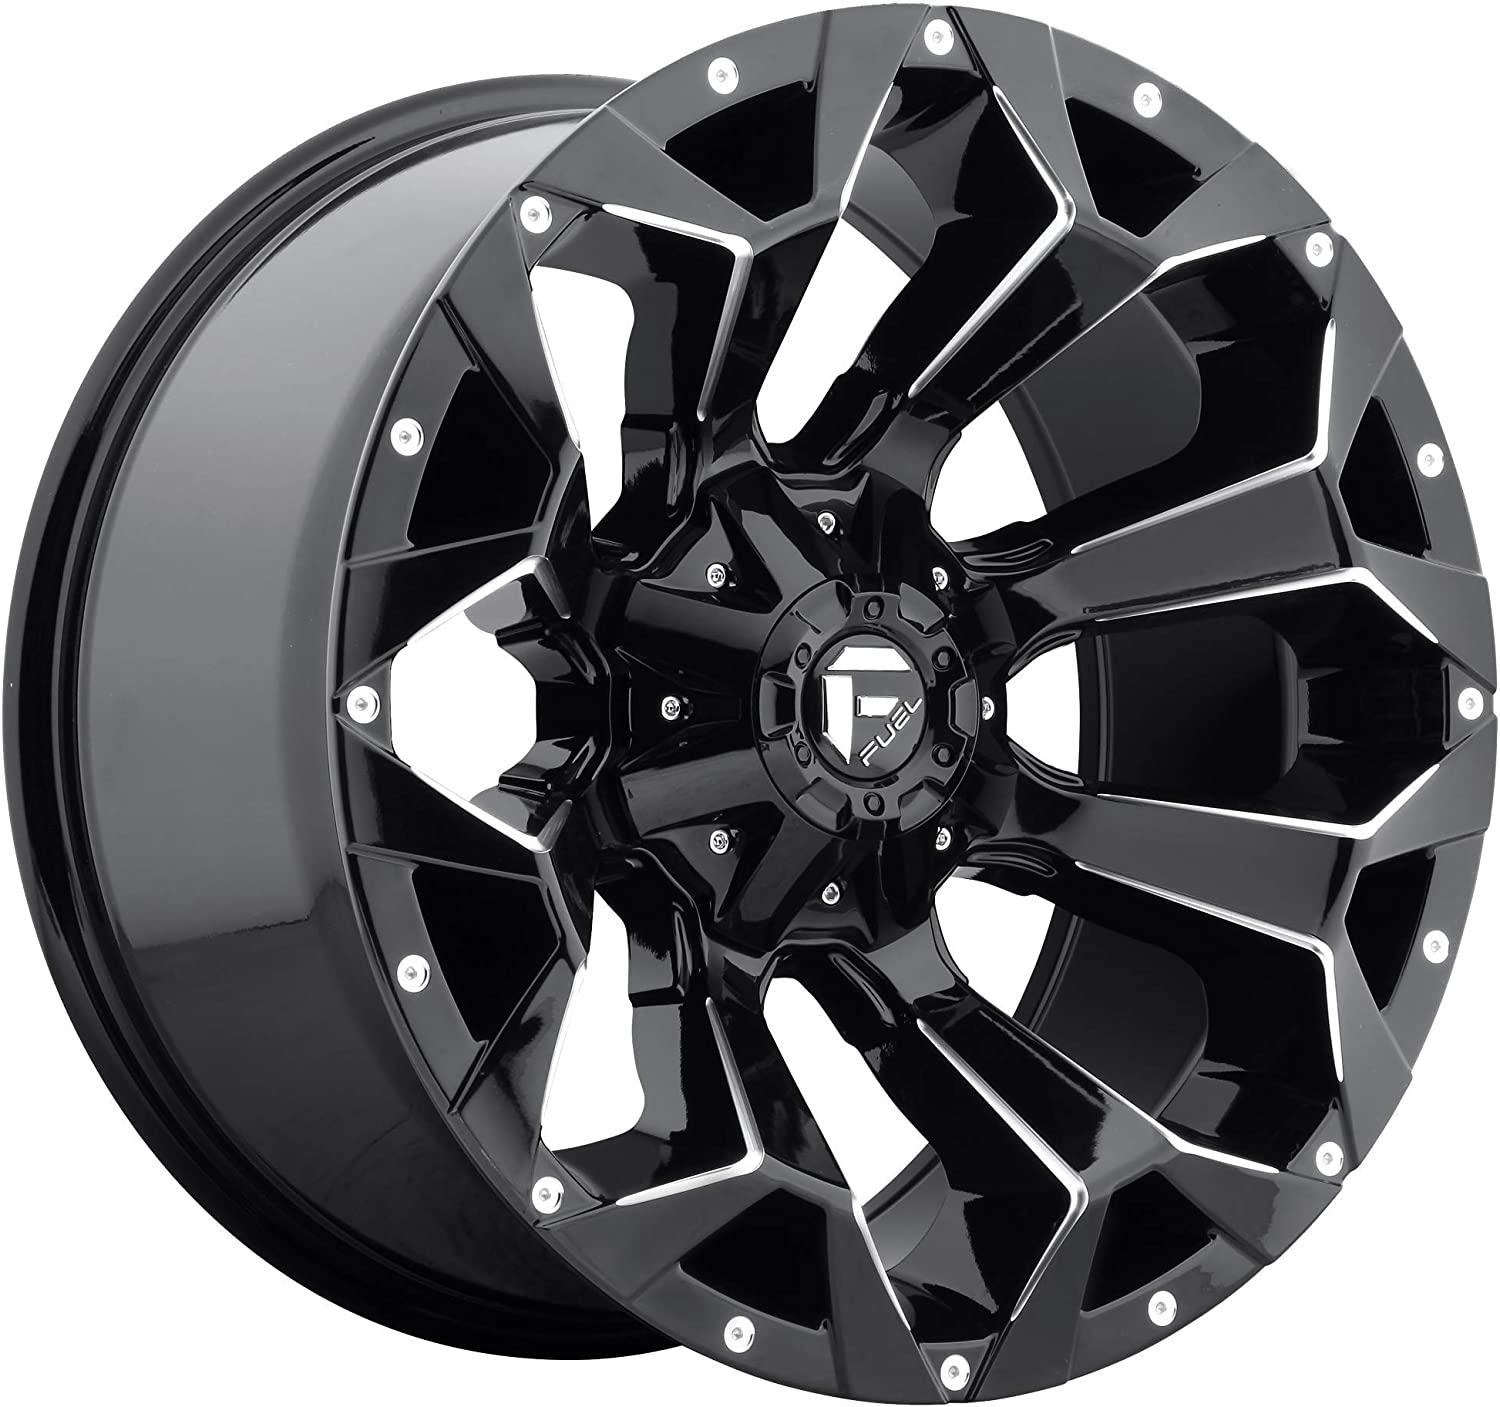 12mm Offset and a 106.4 Hub Bore Partnumber D57617909845 Rim 6x135 /& 6x5.5 with a Fuel Assault 17x9 Gloss Black Wheel